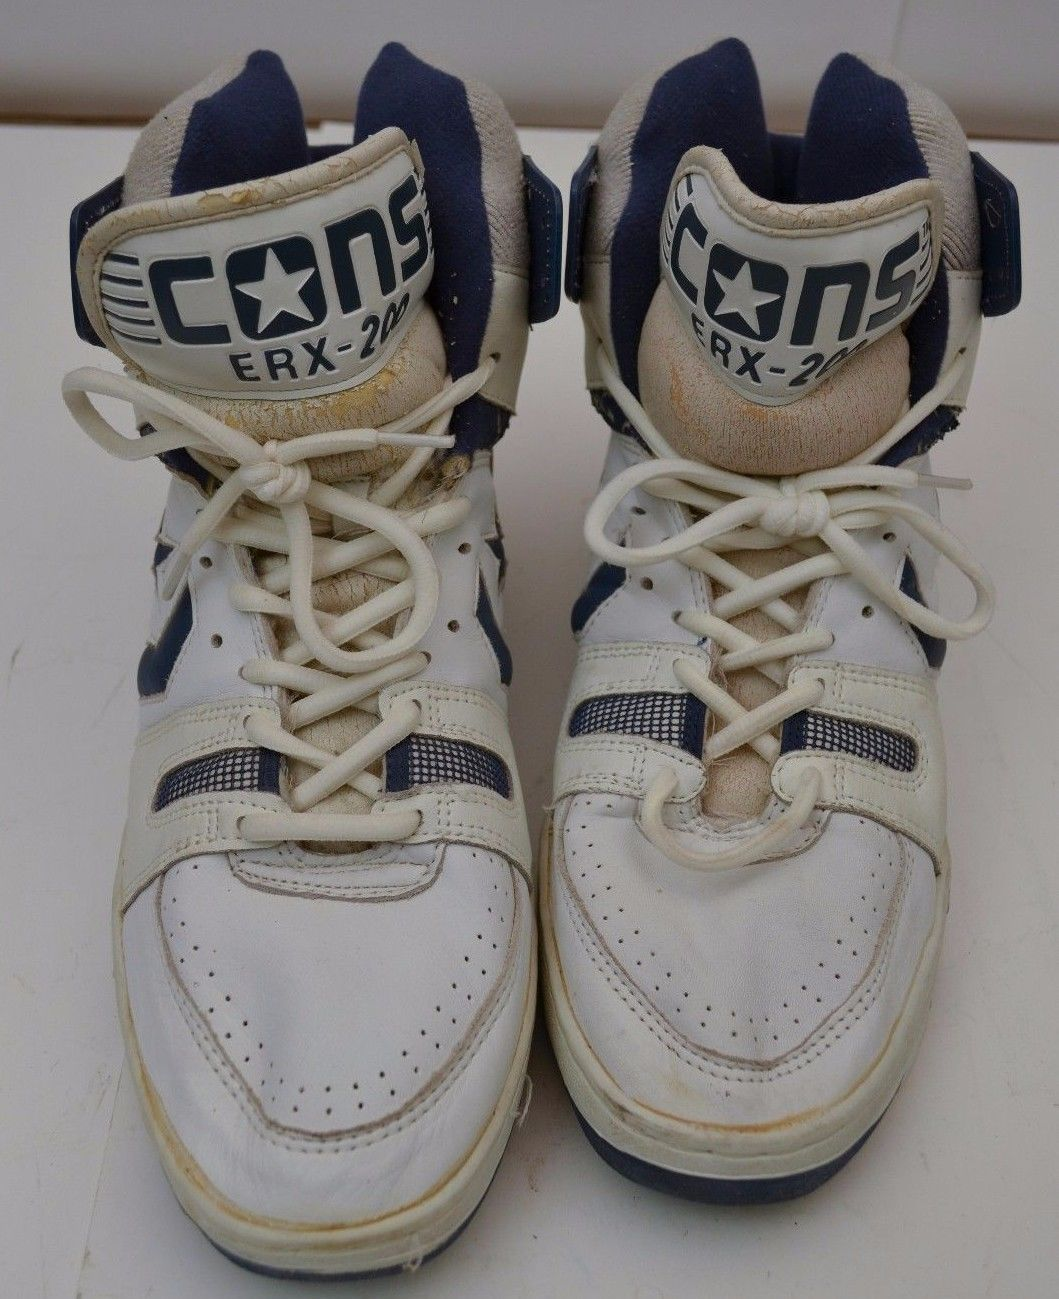 Vintage Converse Cons ERX200 Mens Size 135 US HighTops Made In Korea  Shoes NBA